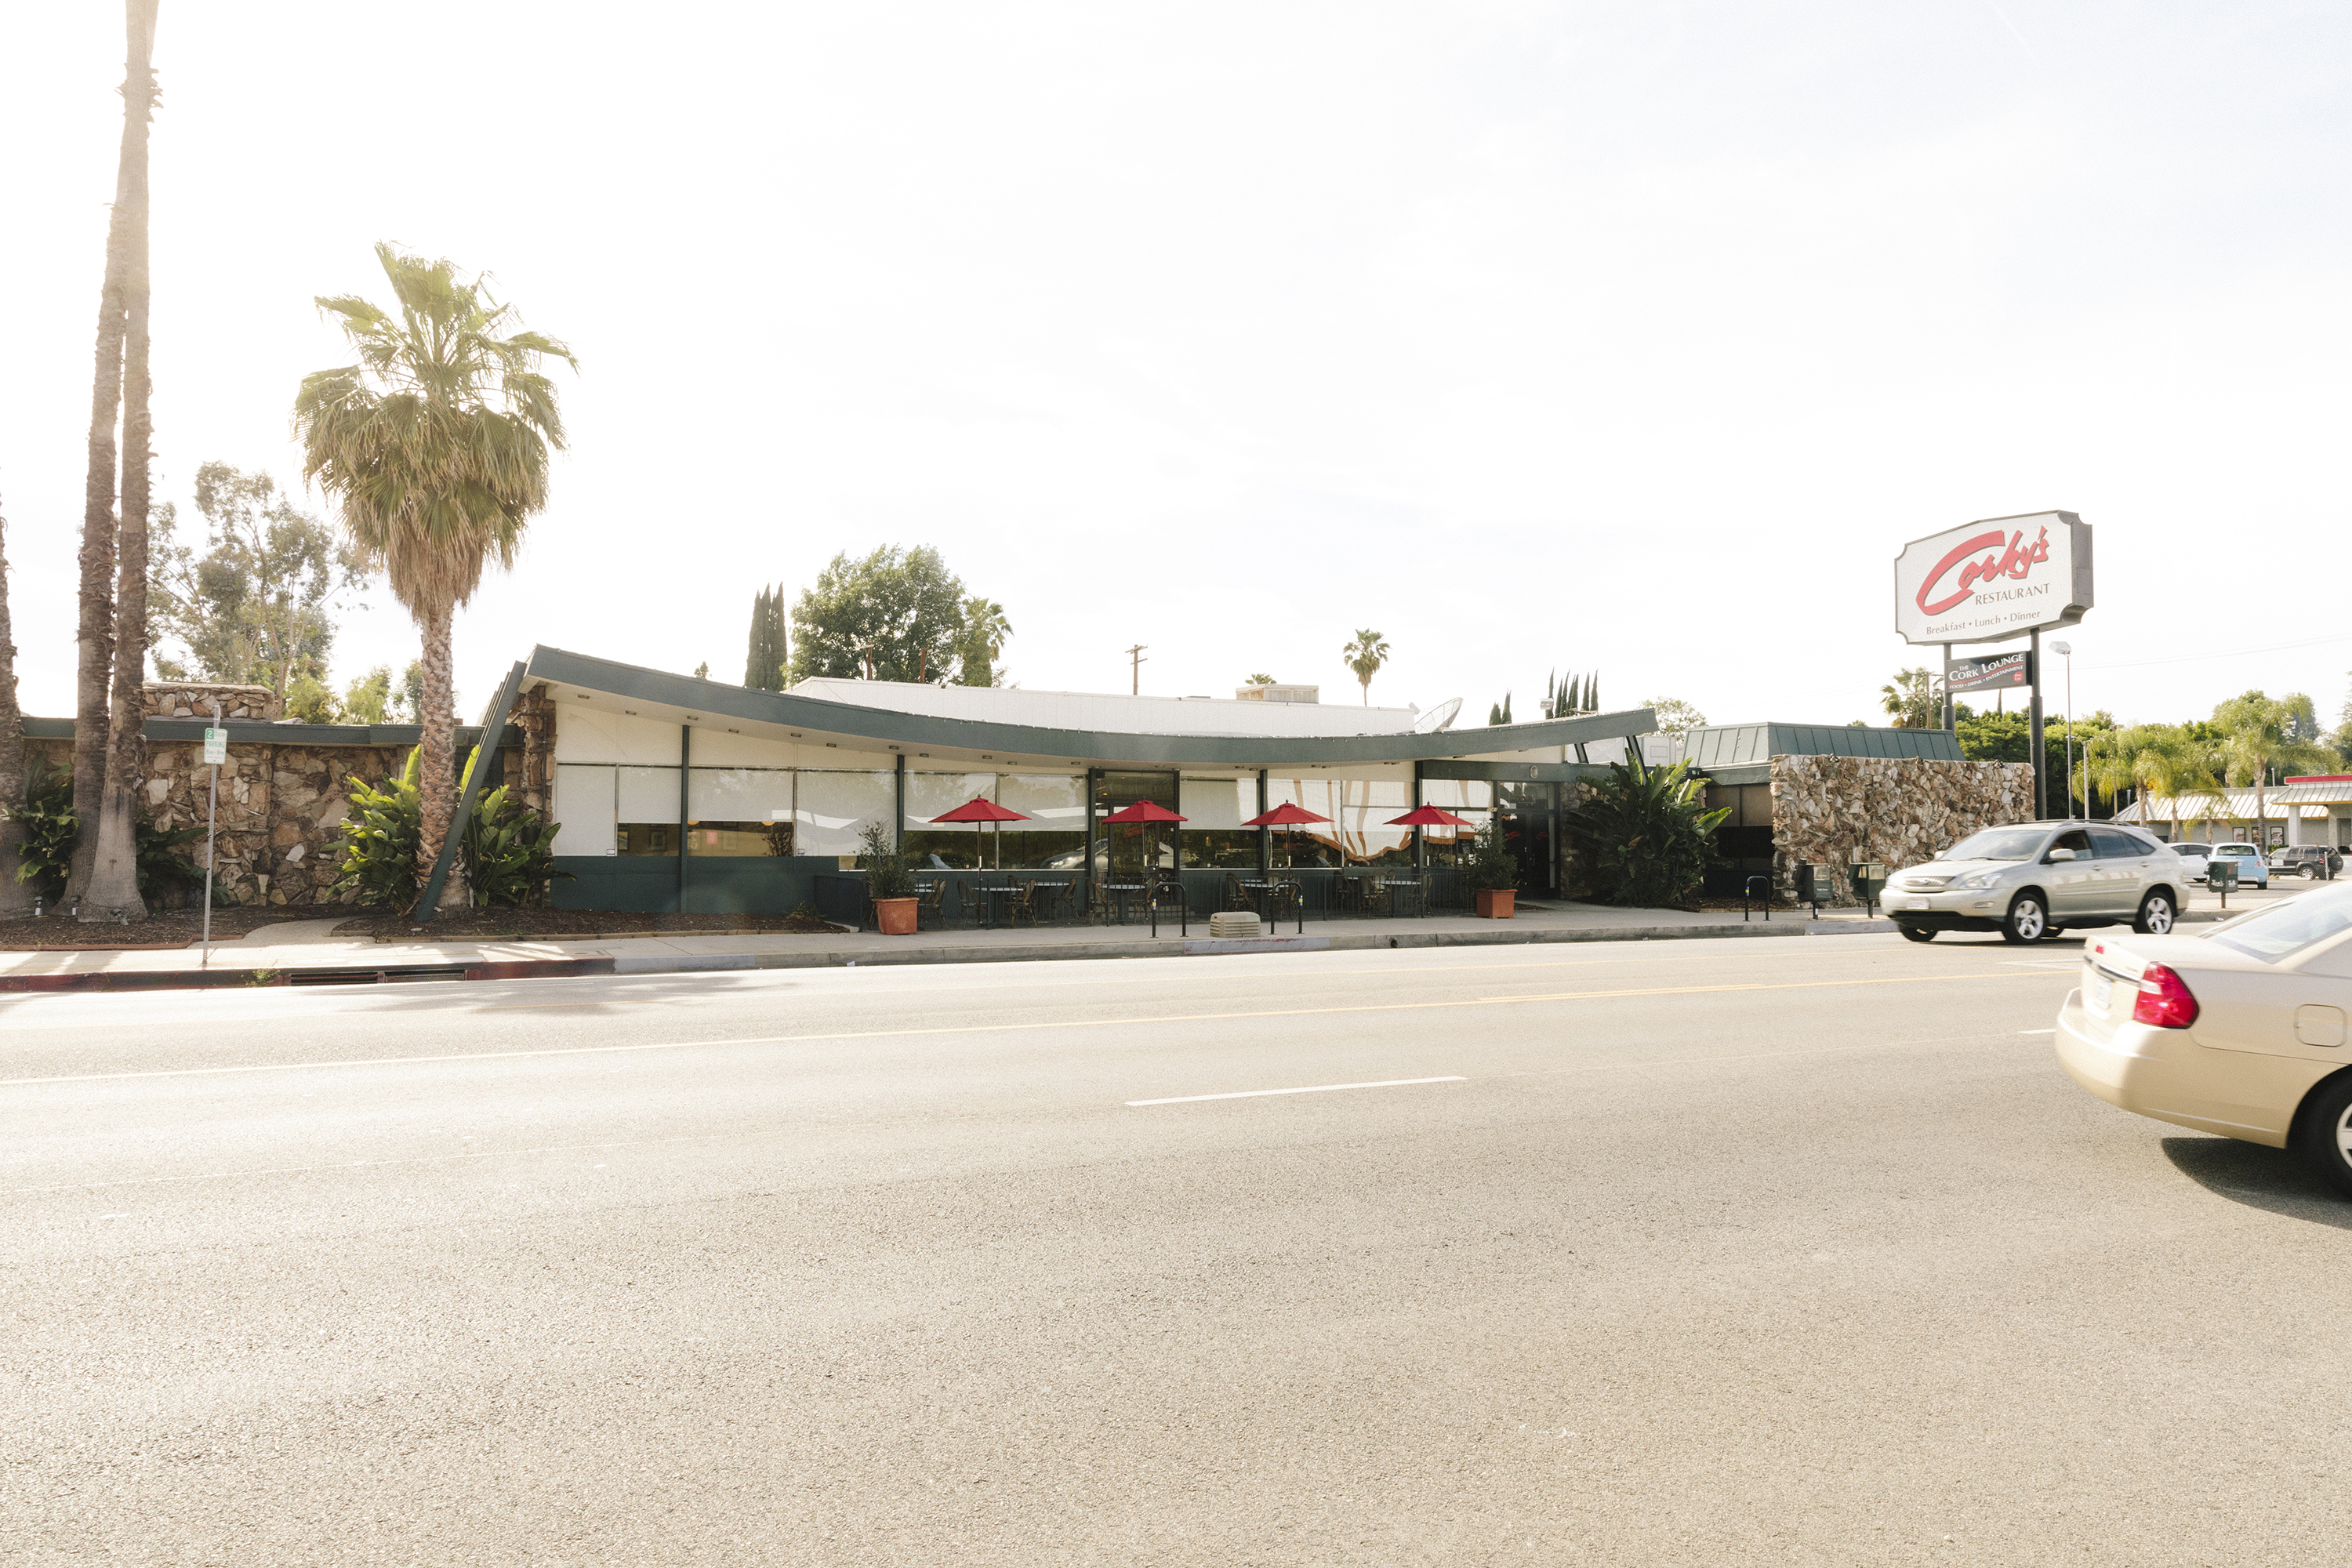 "A single-story midcentury diner with a swooping long roof and a neon sign of the restaurant's name (""Corky's)."